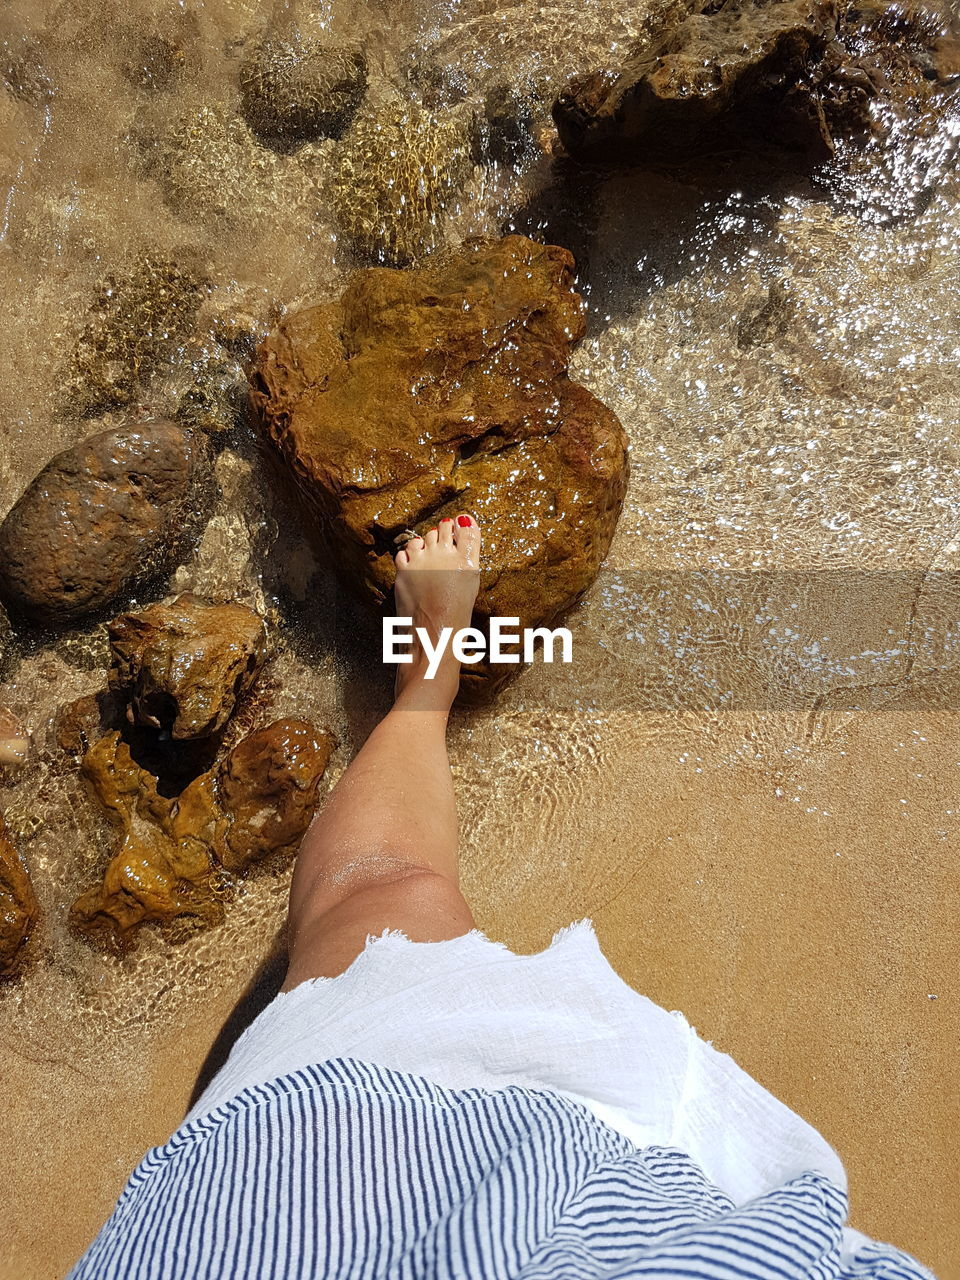 one person, water, real people, low section, human leg, lifestyles, sea, high angle view, leisure activity, barefoot, body part, nature, human body part, personal perspective, beach, human foot, adult, relaxation